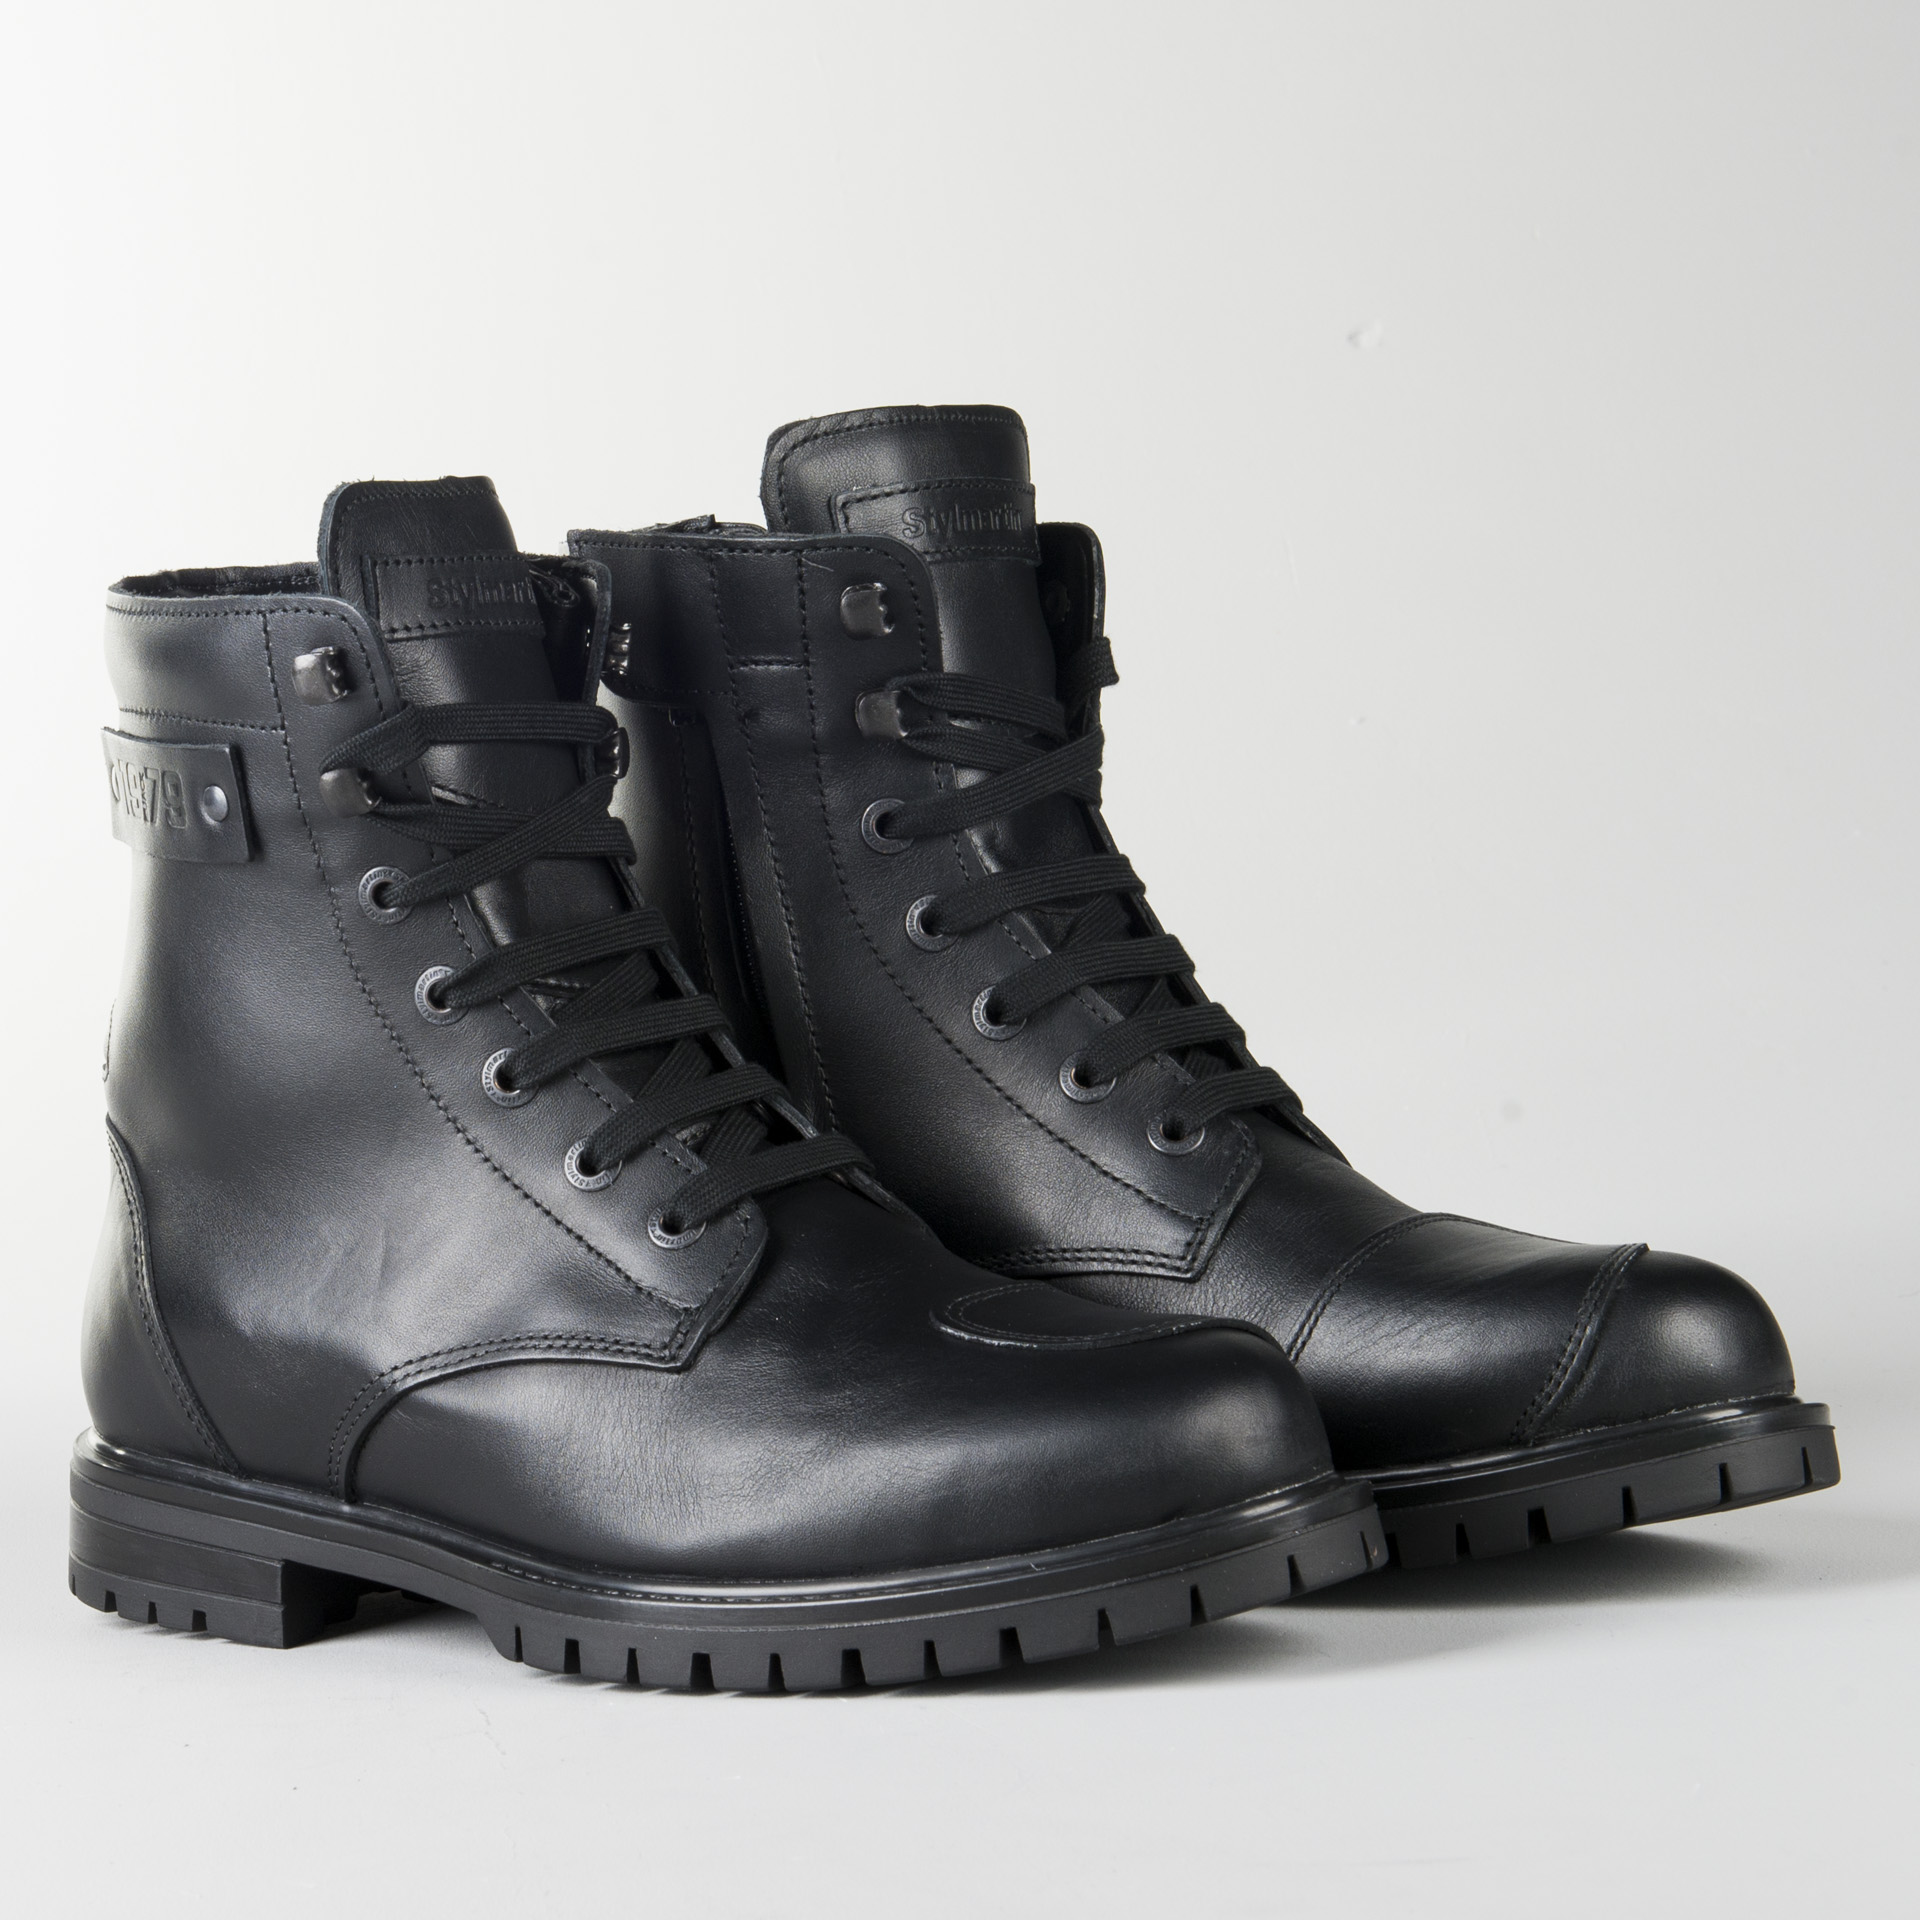 Stylmartin JACK MC Shoes Black Now 10% Savings XLmoto.eu